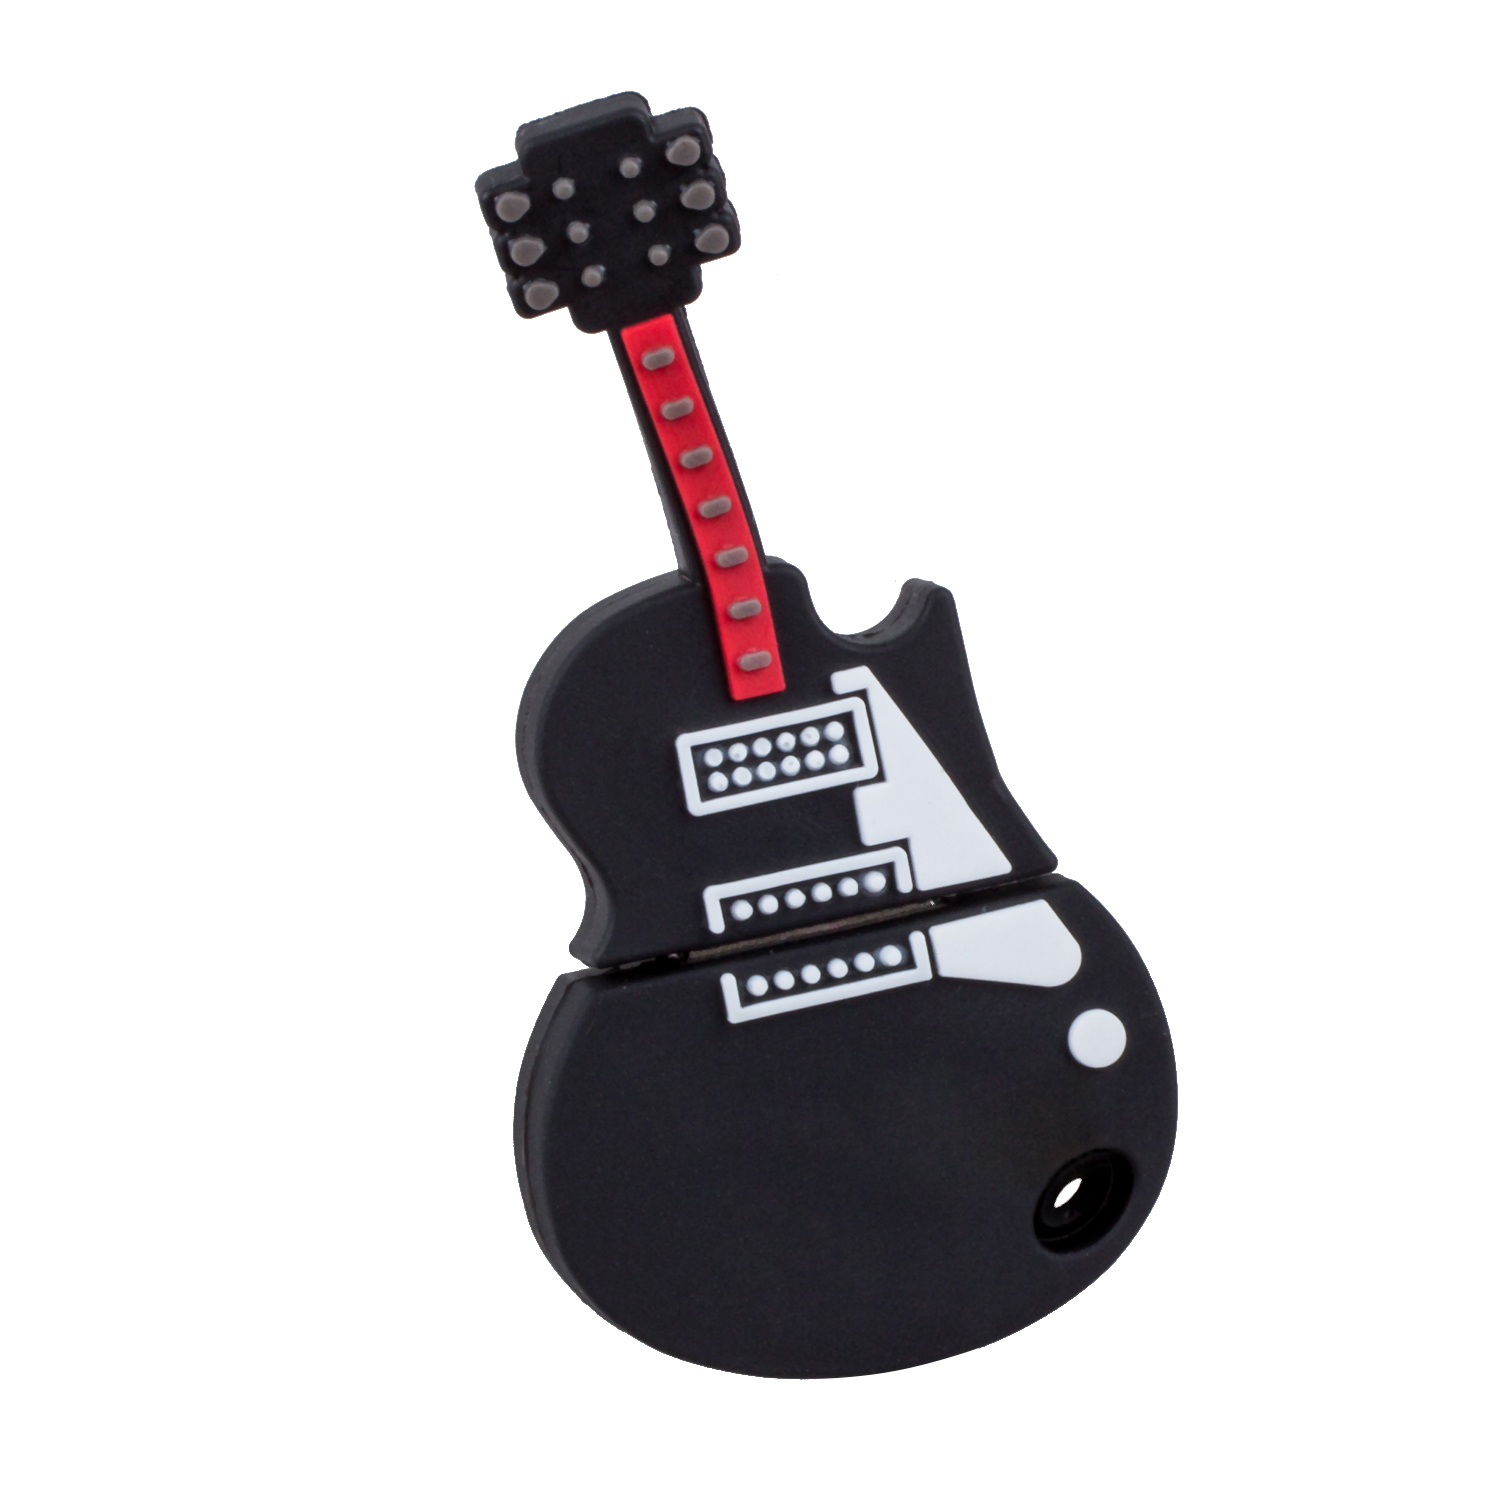 513q4 16gb novelty cool guitar style usb flash pen drive. Black Bedroom Furniture Sets. Home Design Ideas